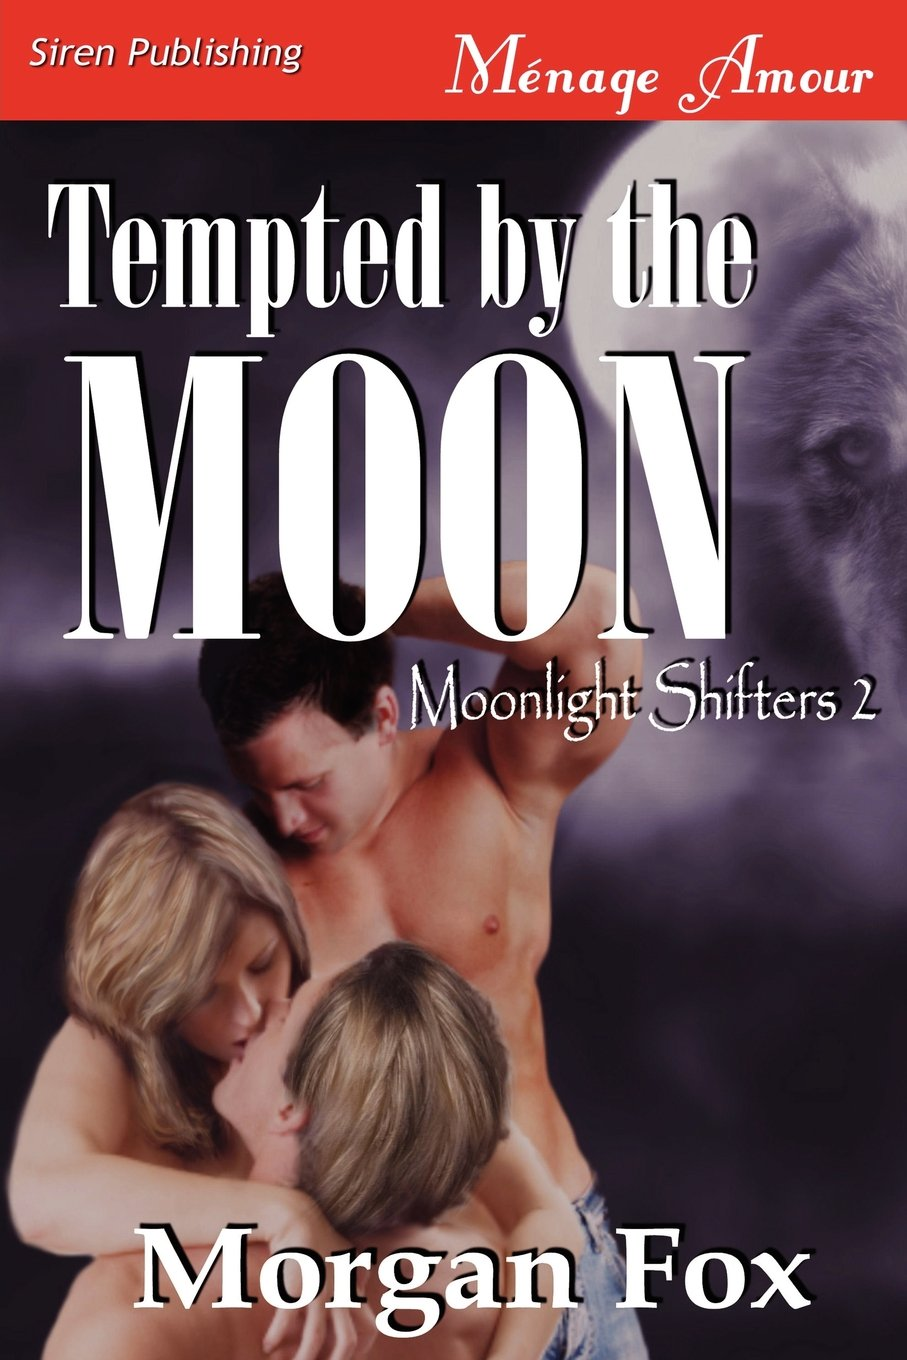 Download Tempted by the Moon [Moonlight Shifters 2] (Siren Publishing Menage Amour) PDF